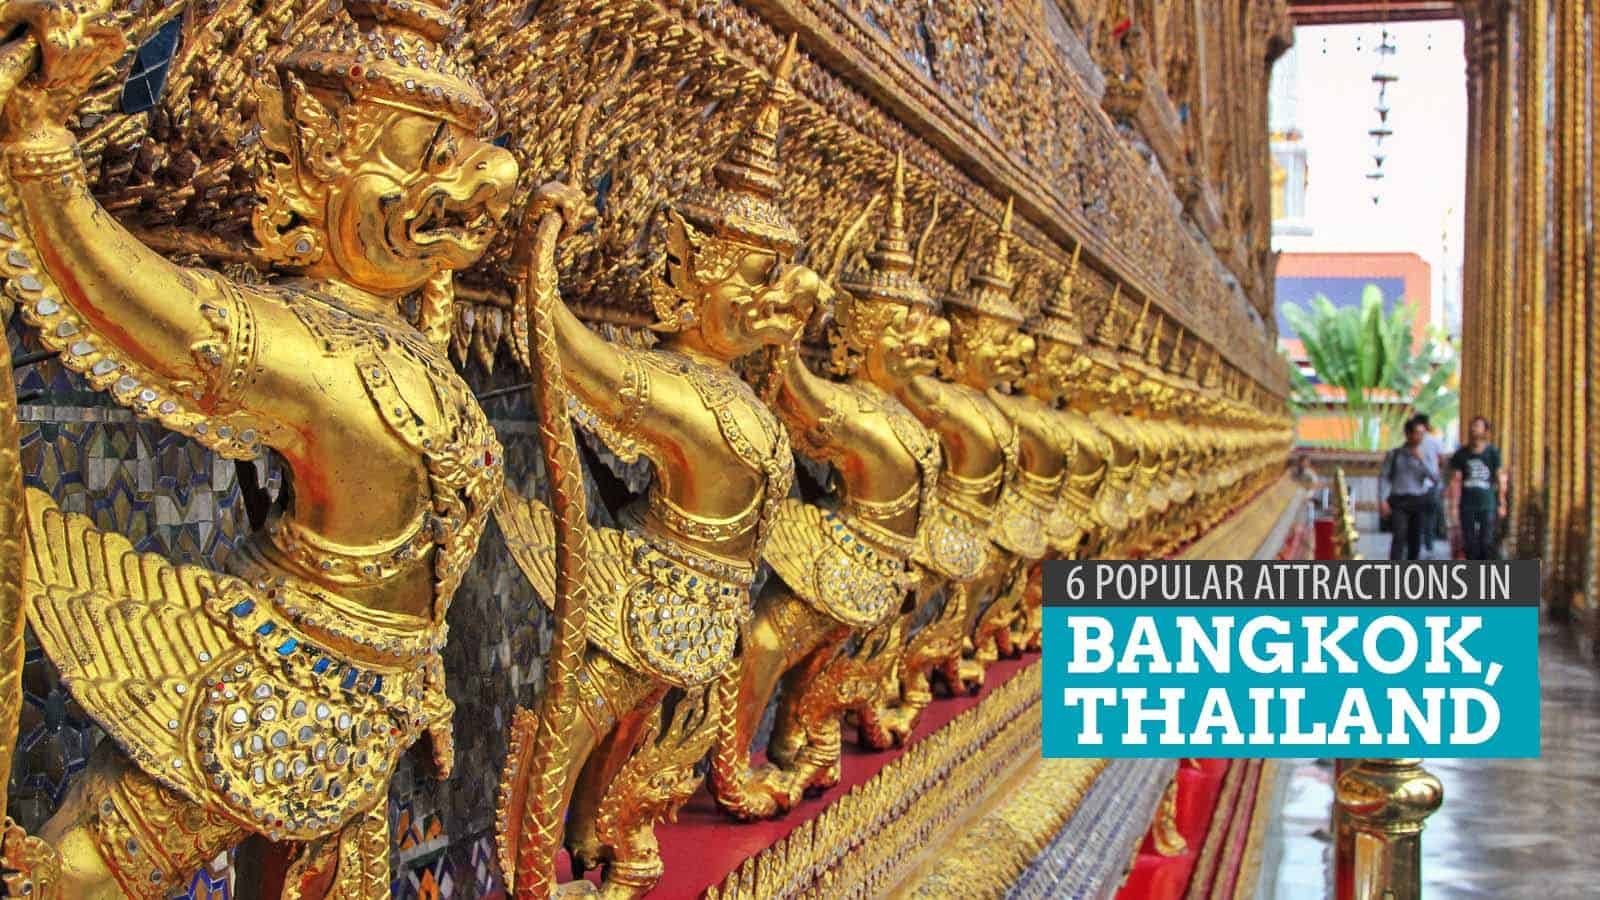 DIY BANGKOK TEMPLES & RIVER TOUR: 6 Popular Attractions